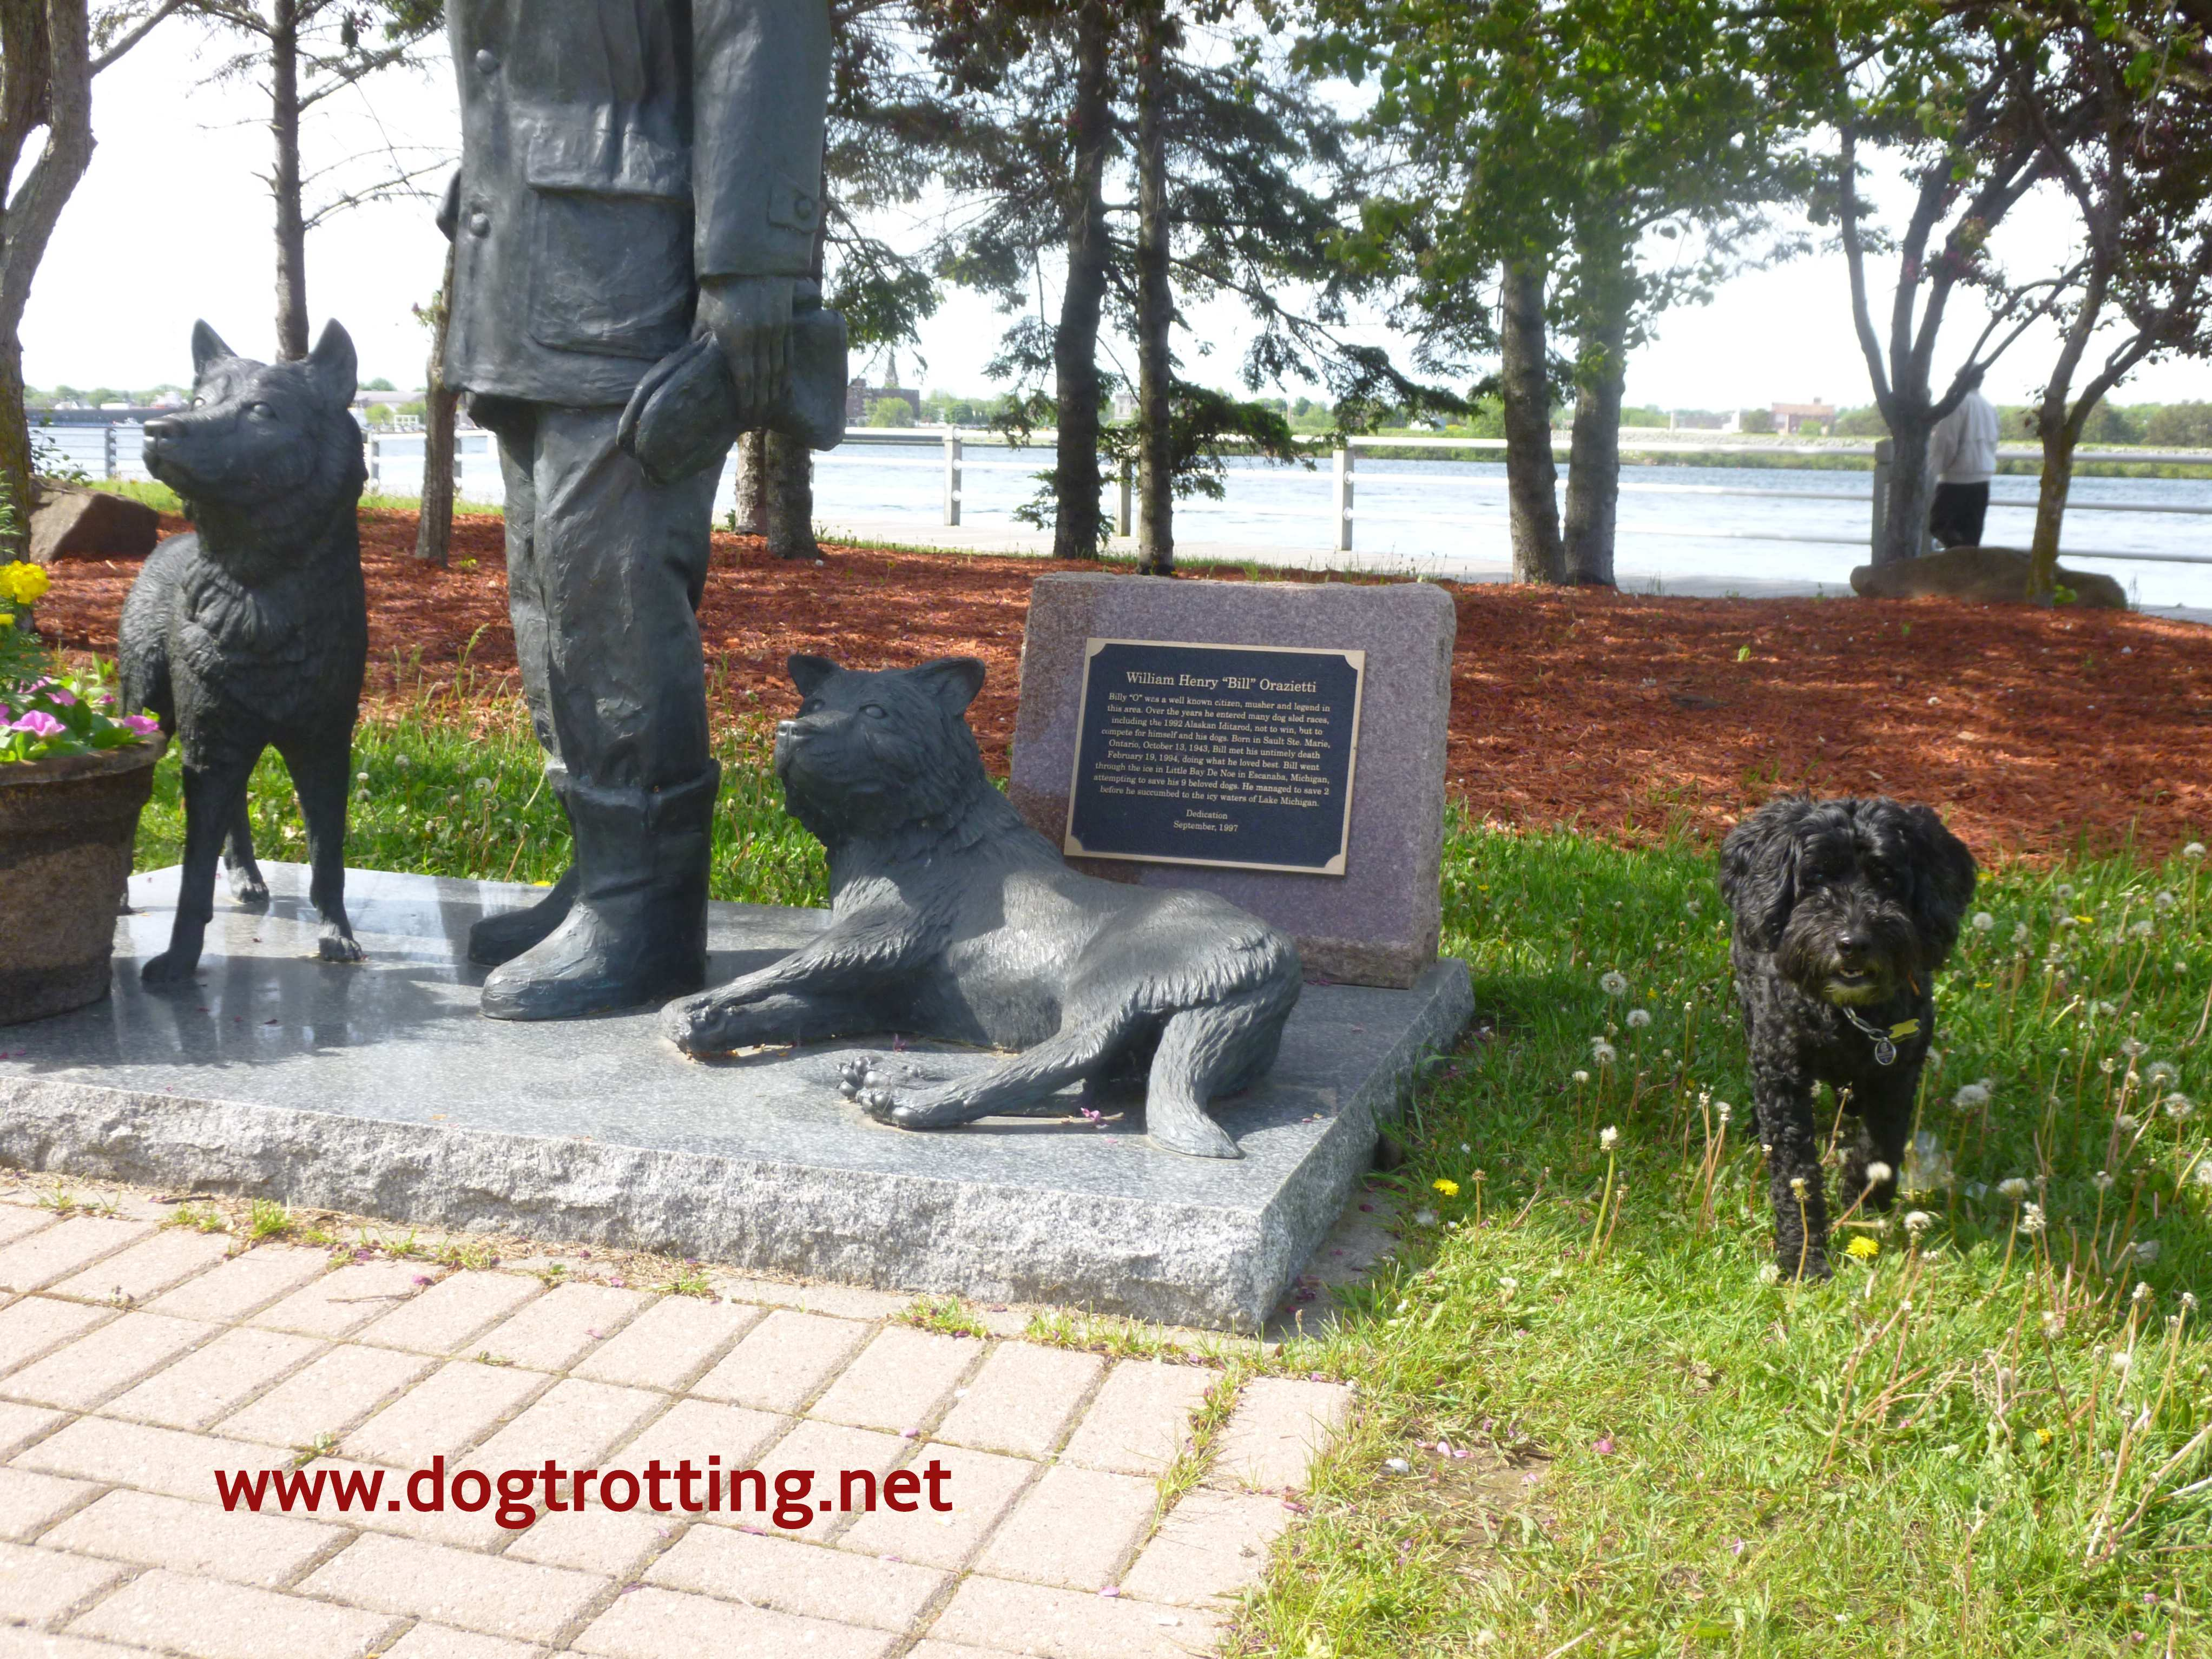 sculpture along boardwalk trail and dog in Sault Ste. Marie, Ontario